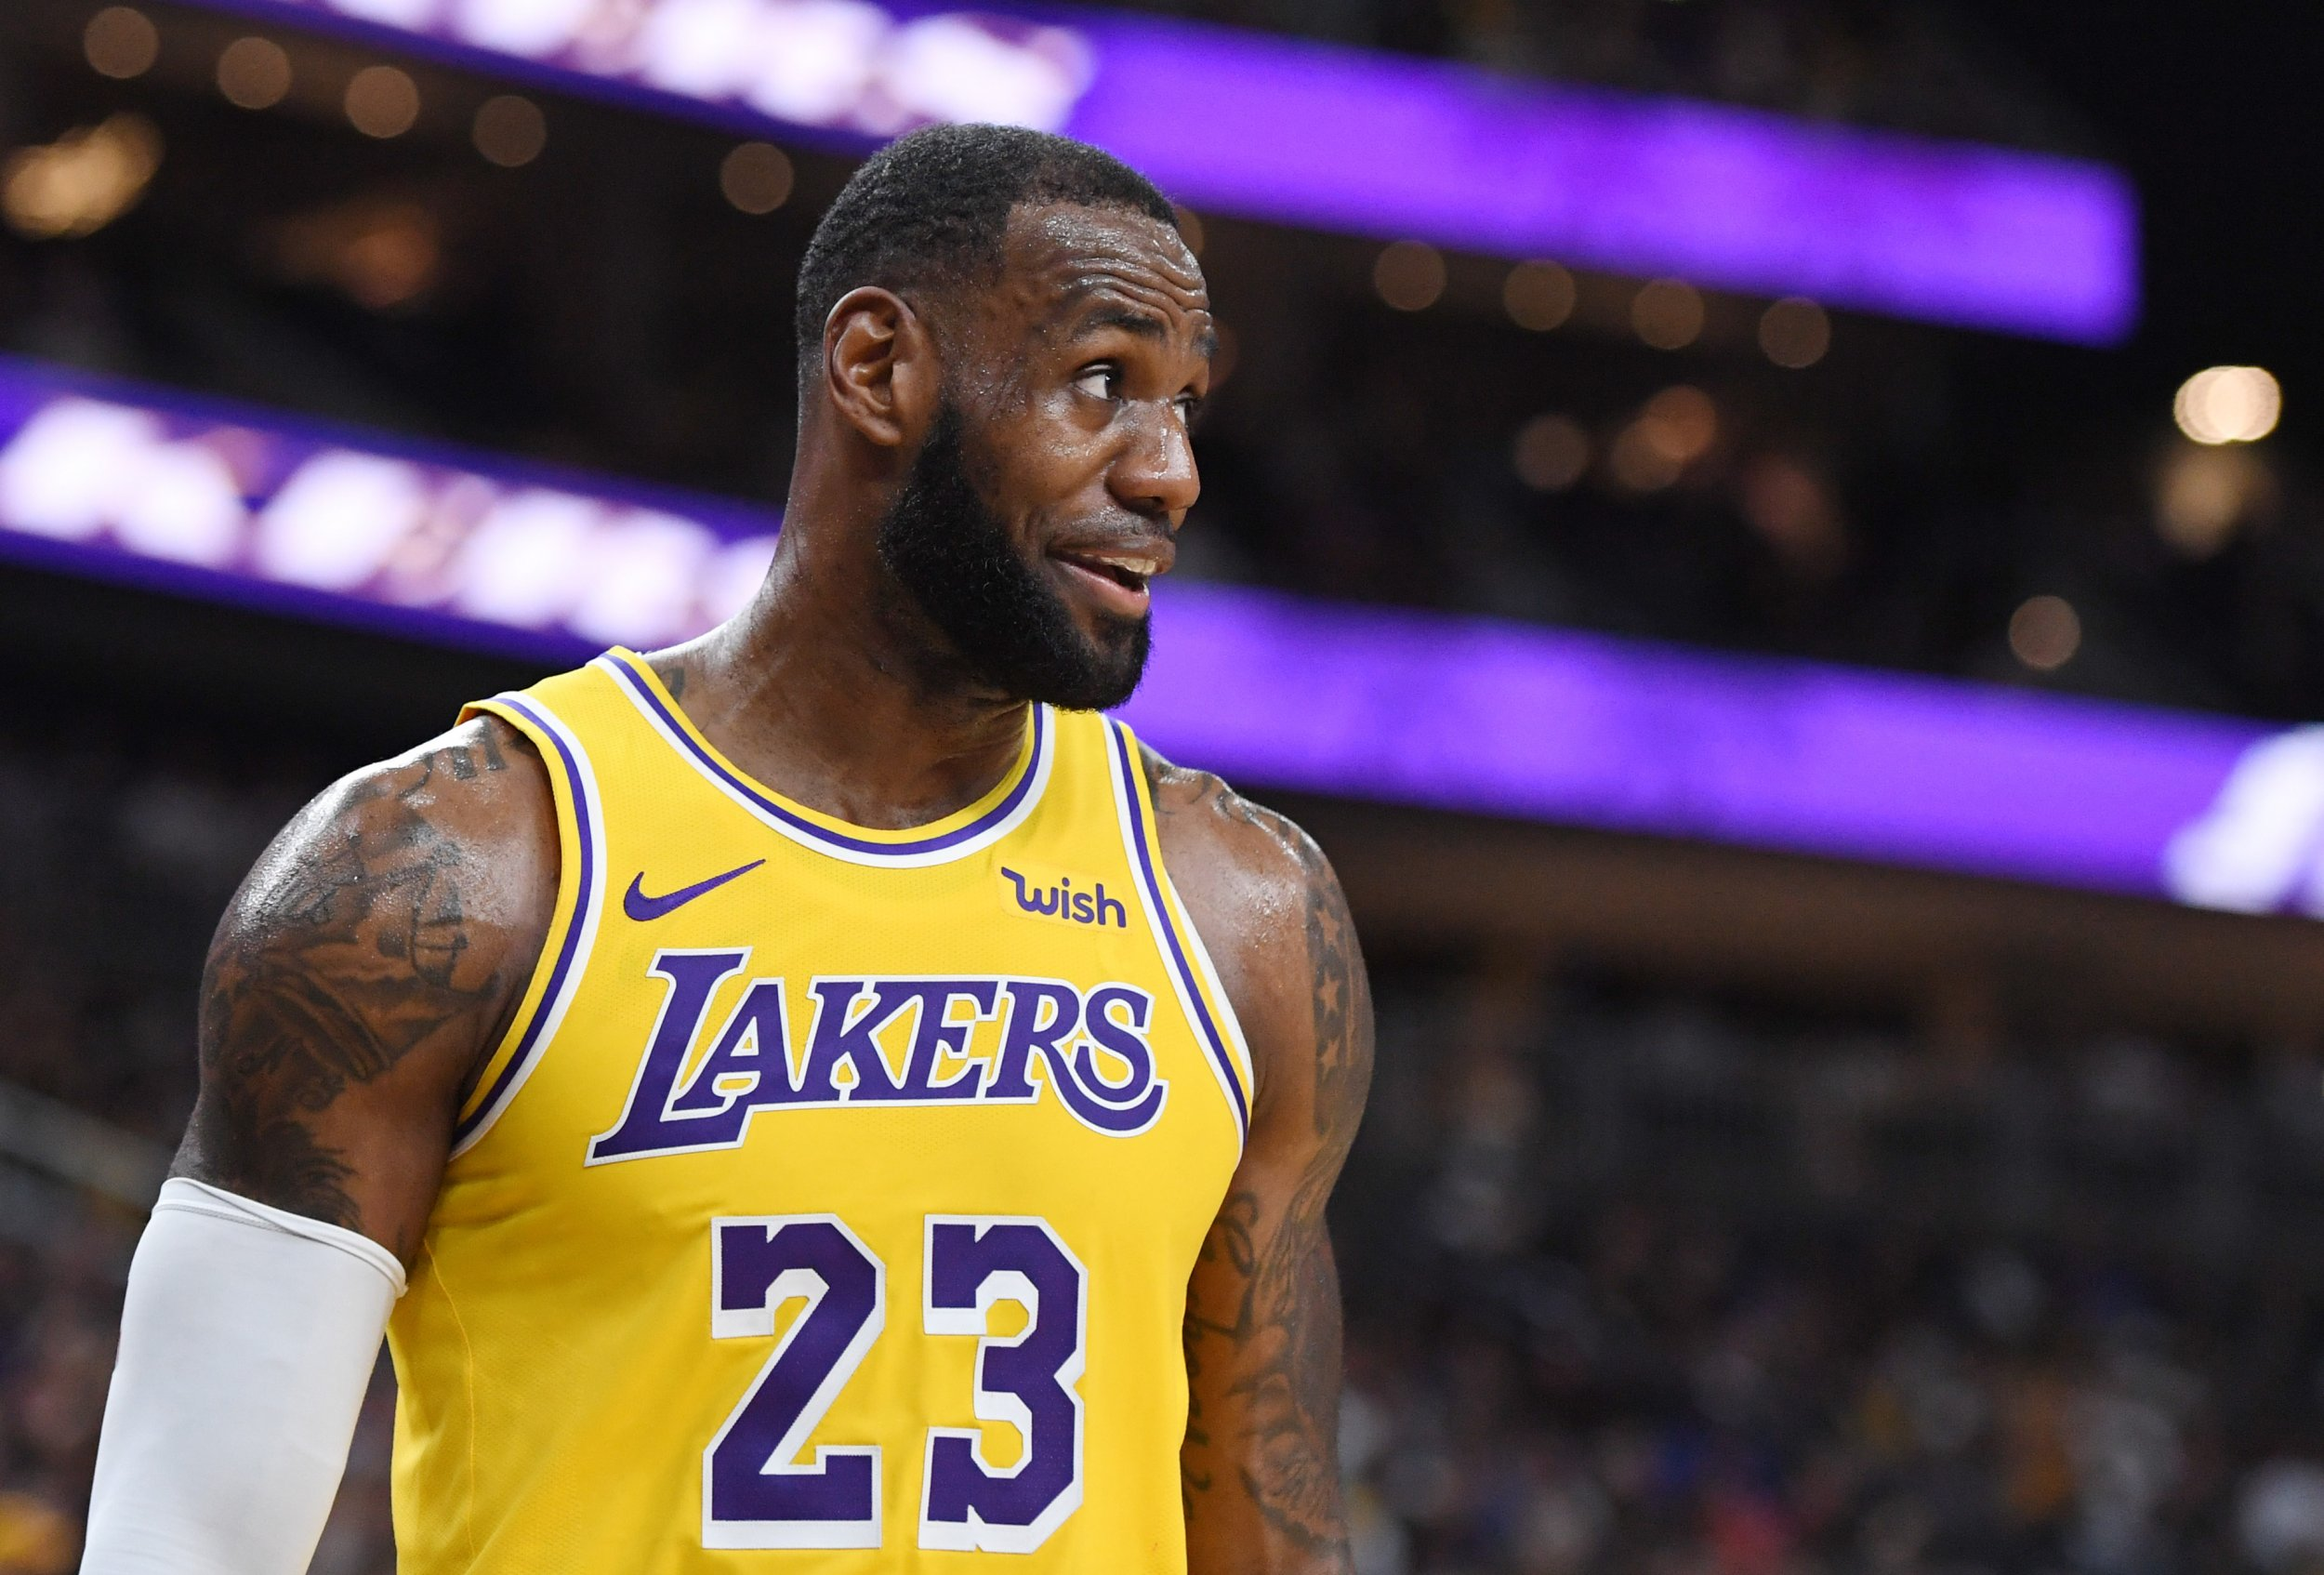 NBA Predictions for 2018-2019 Season: Playoff Teams, MVP and Title Picks From Experts Ahead of Opener